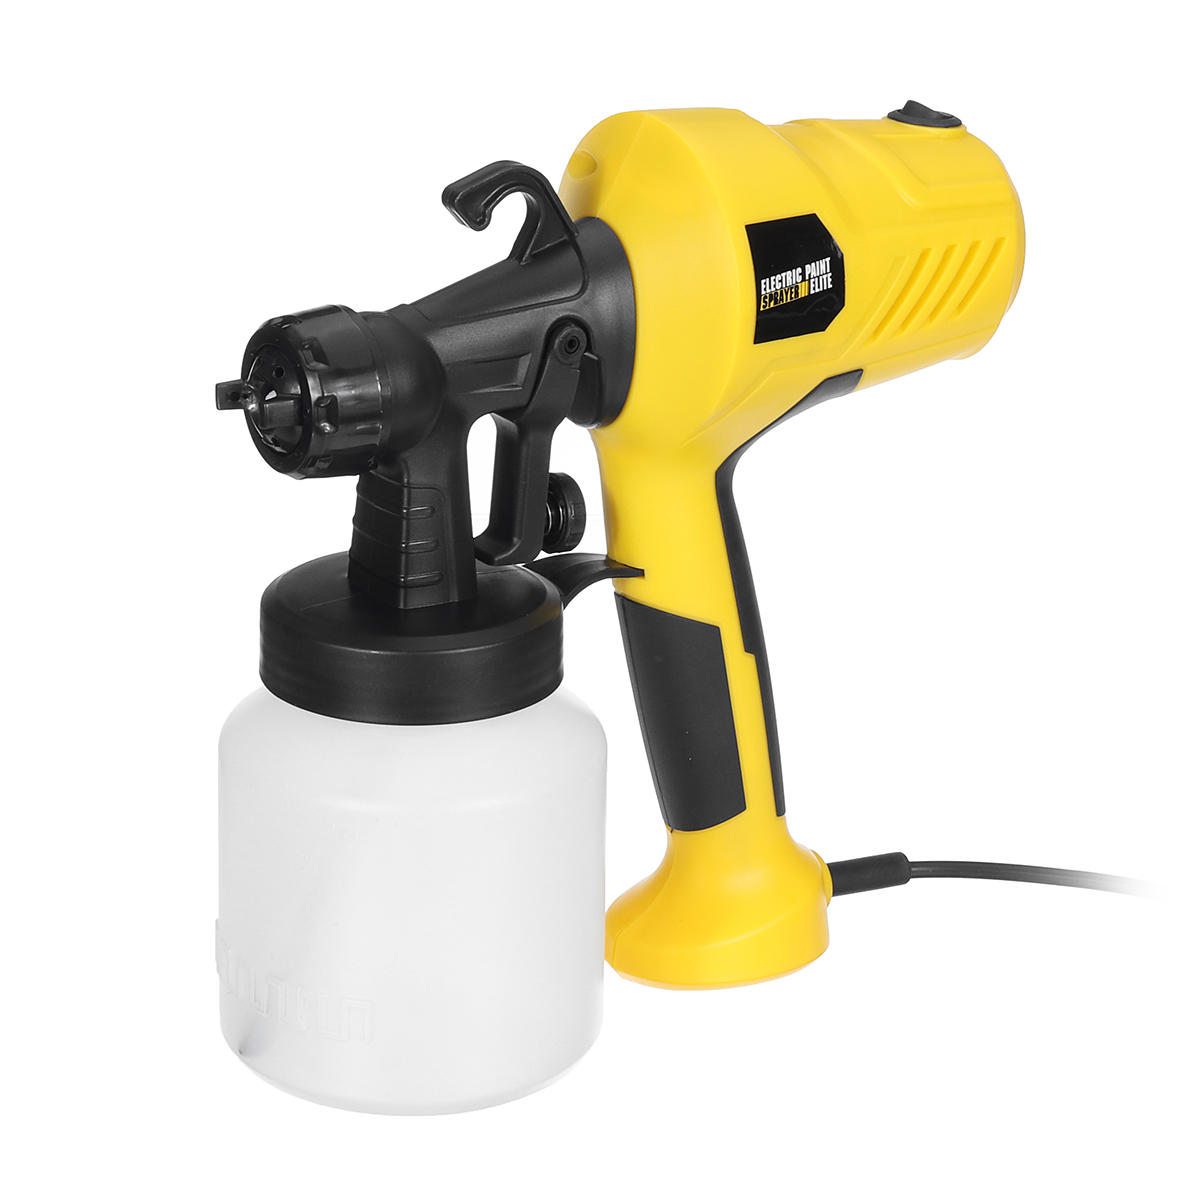 Electric Easy Spray Paint Sprayer Home Car Painting 1.8 +2.5mm Adjustable Nozzle - 1